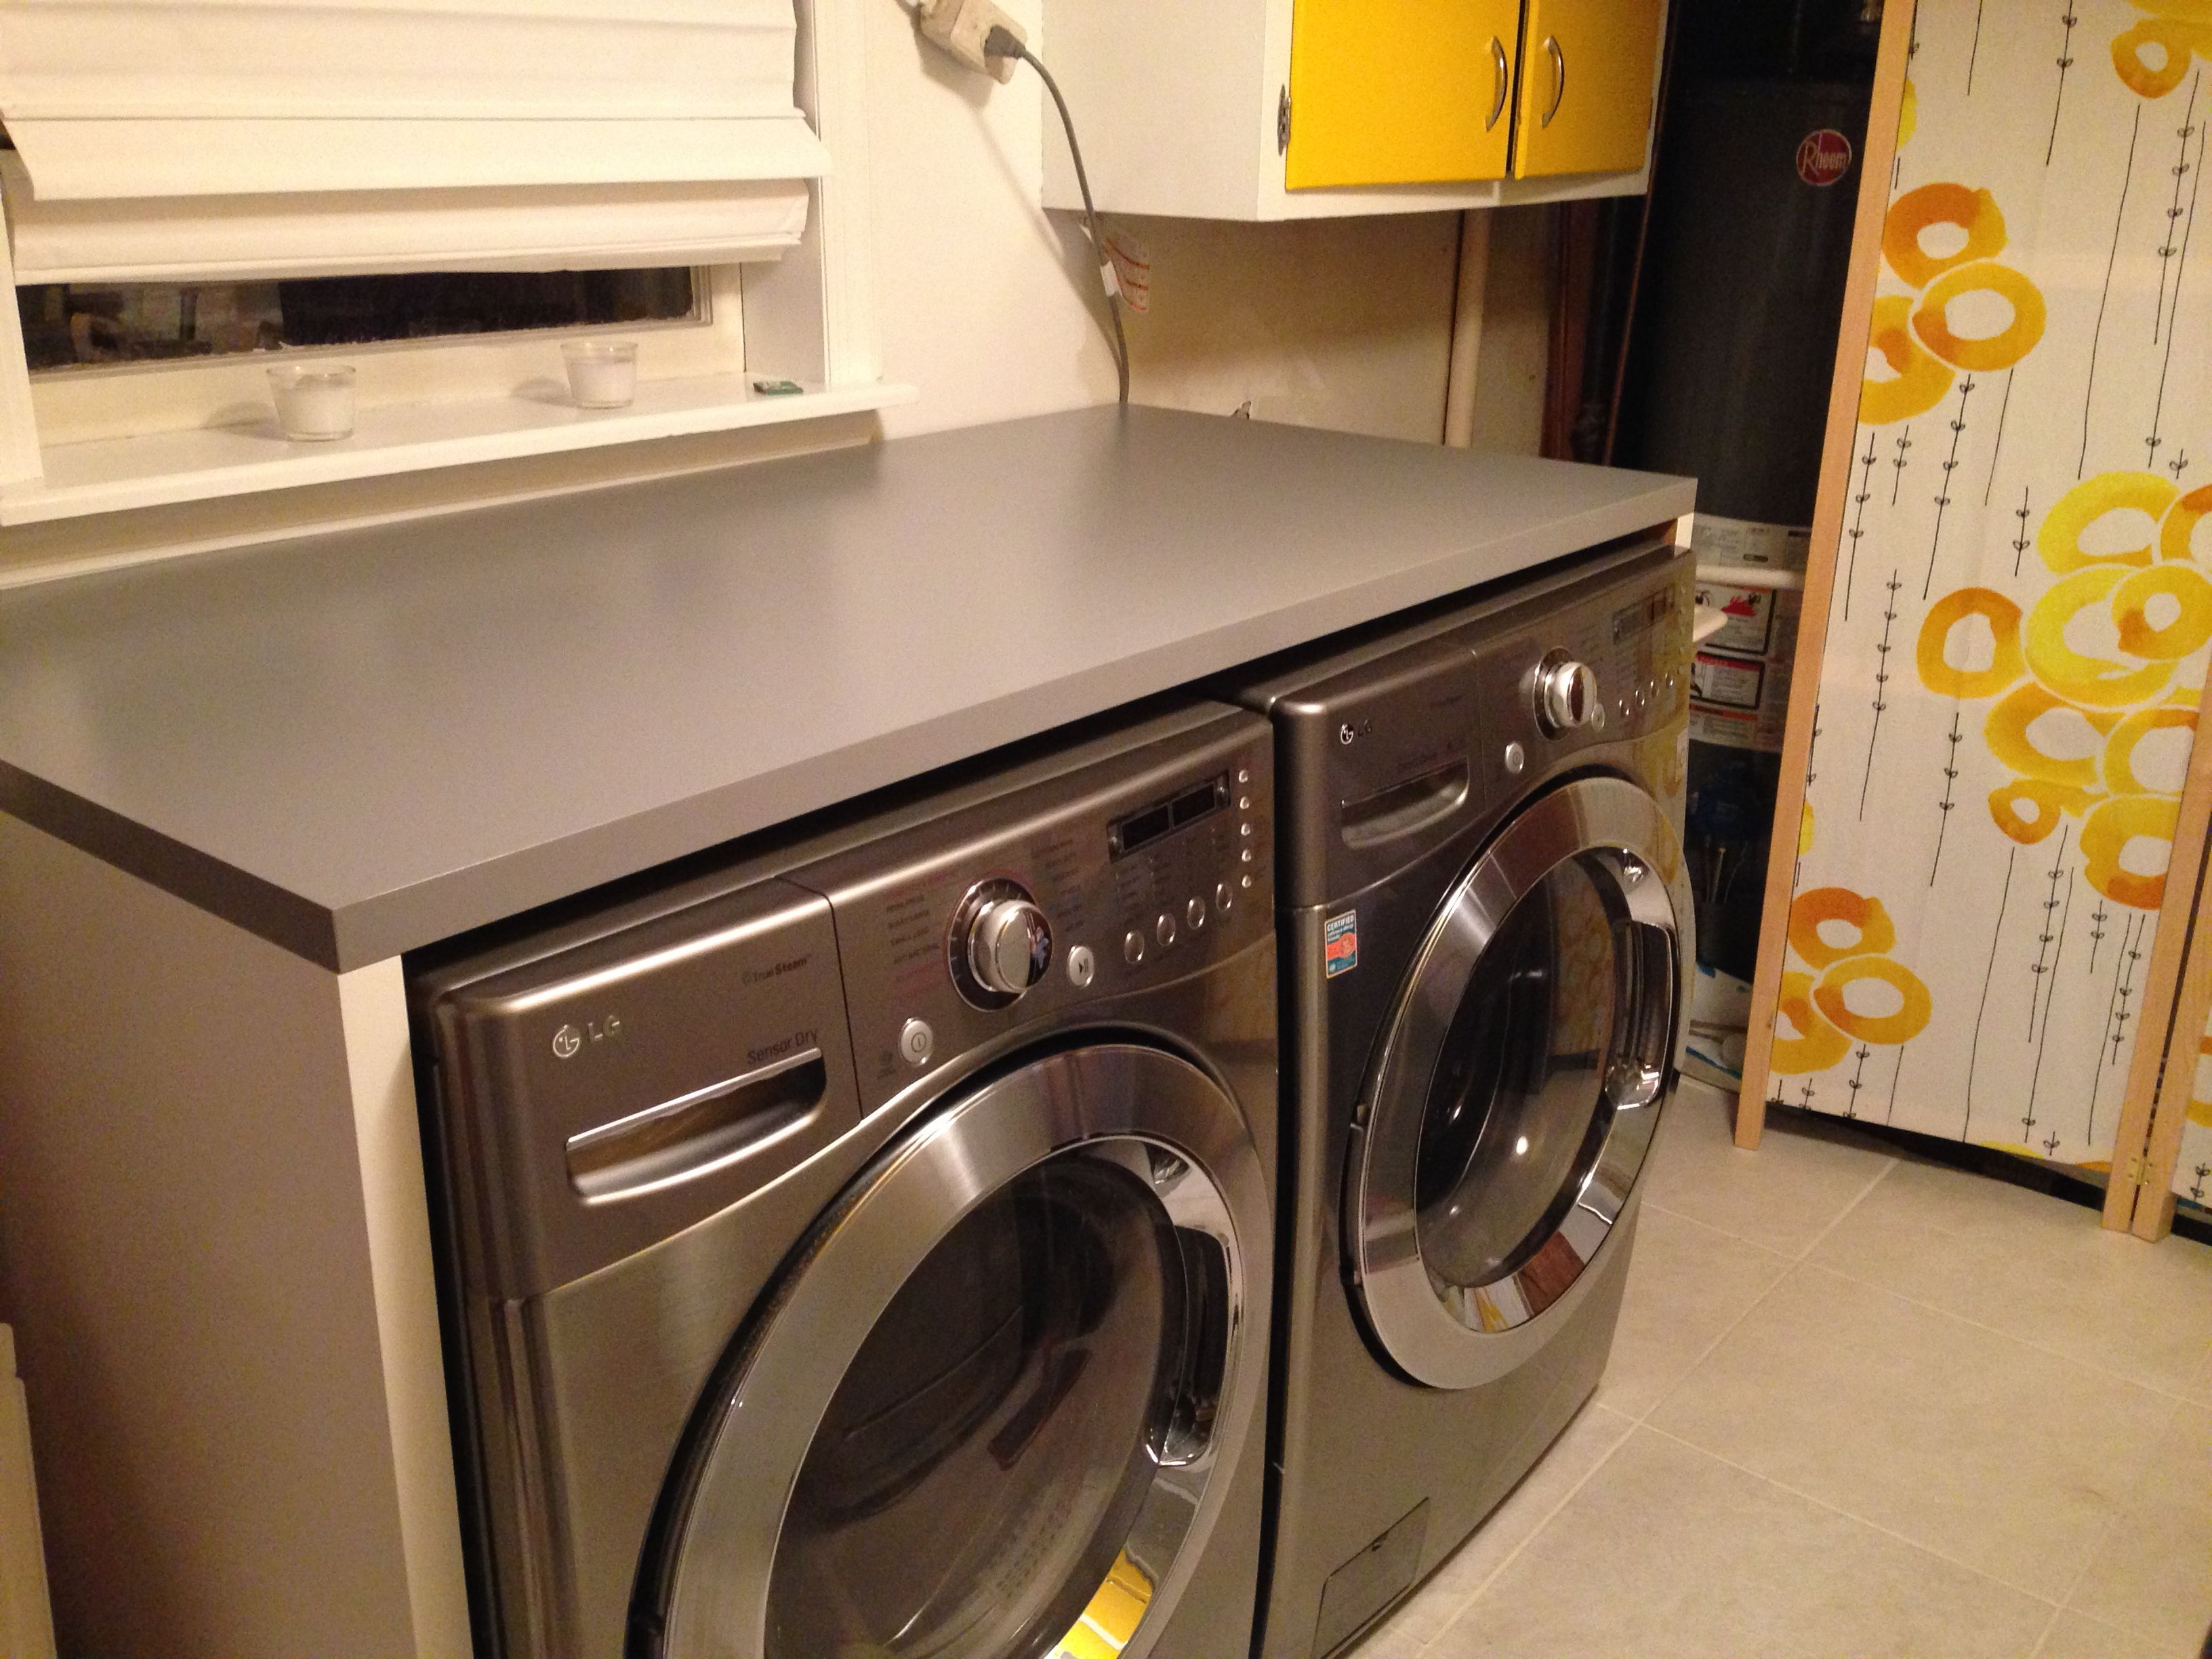 Ikea Linnmon Tabletops To Build Counter Around Washer And